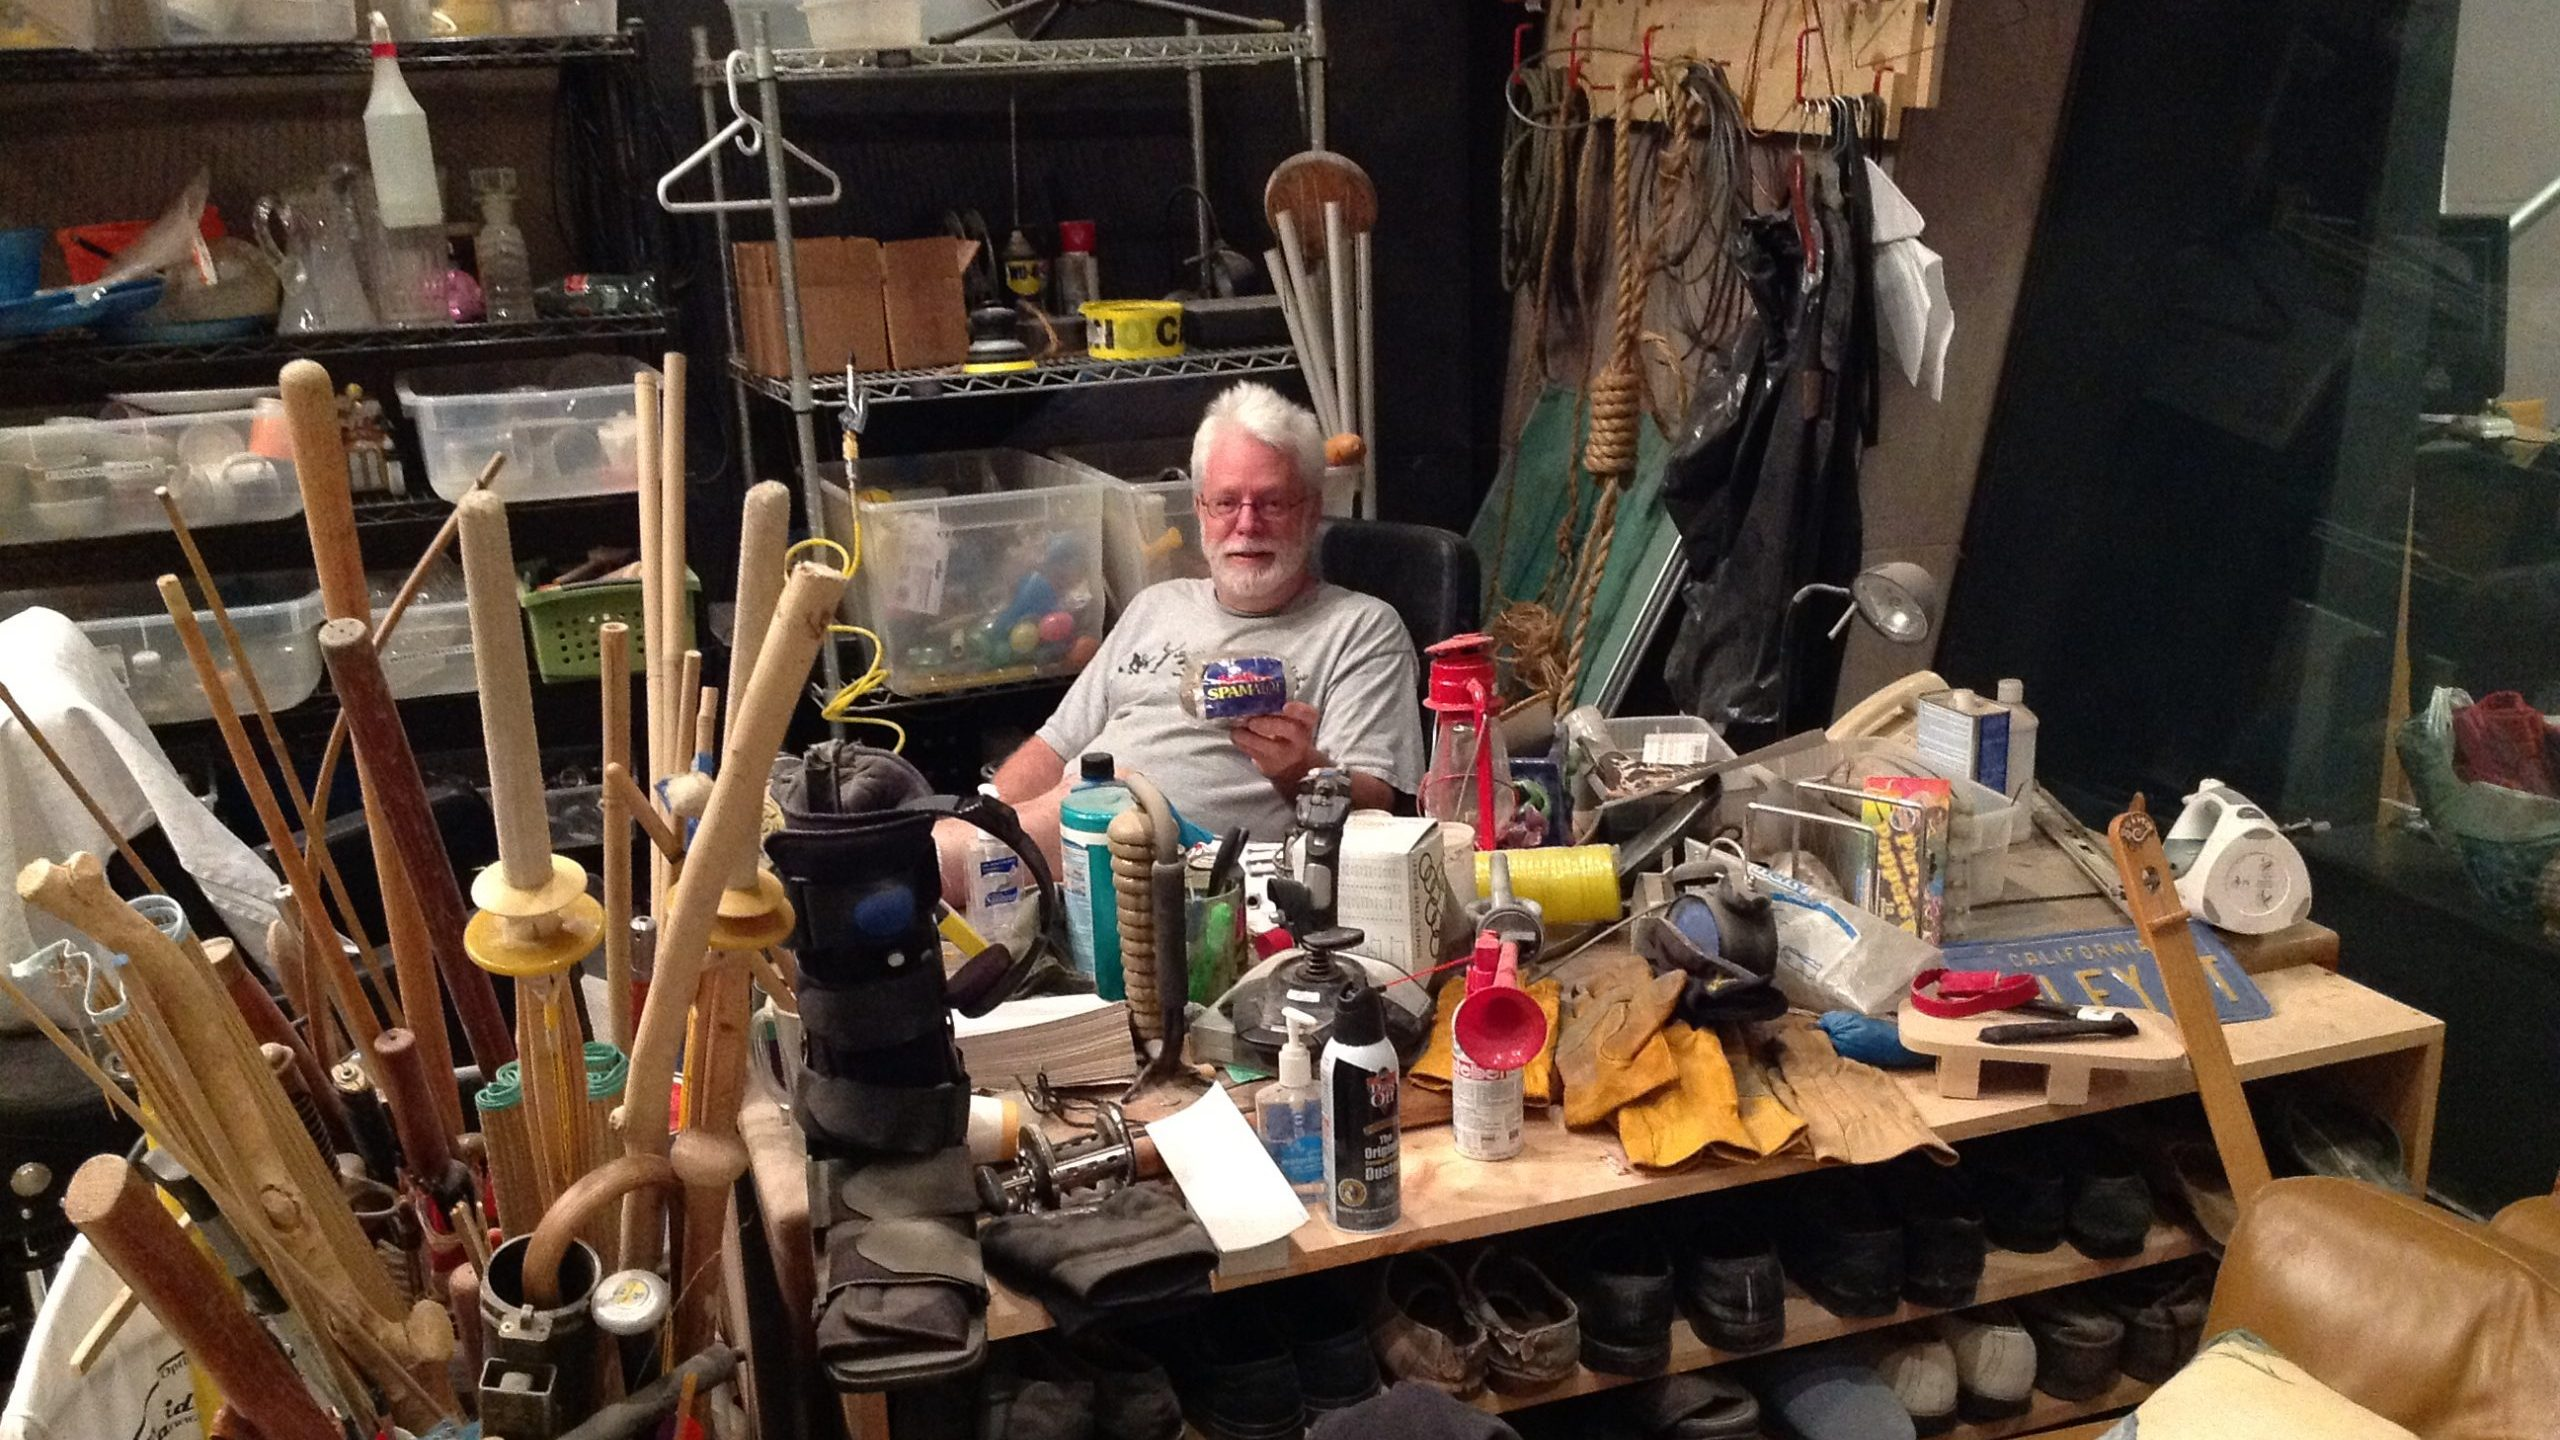 Foley Artist John Roesh sitting behind his desk surrounded by instruments